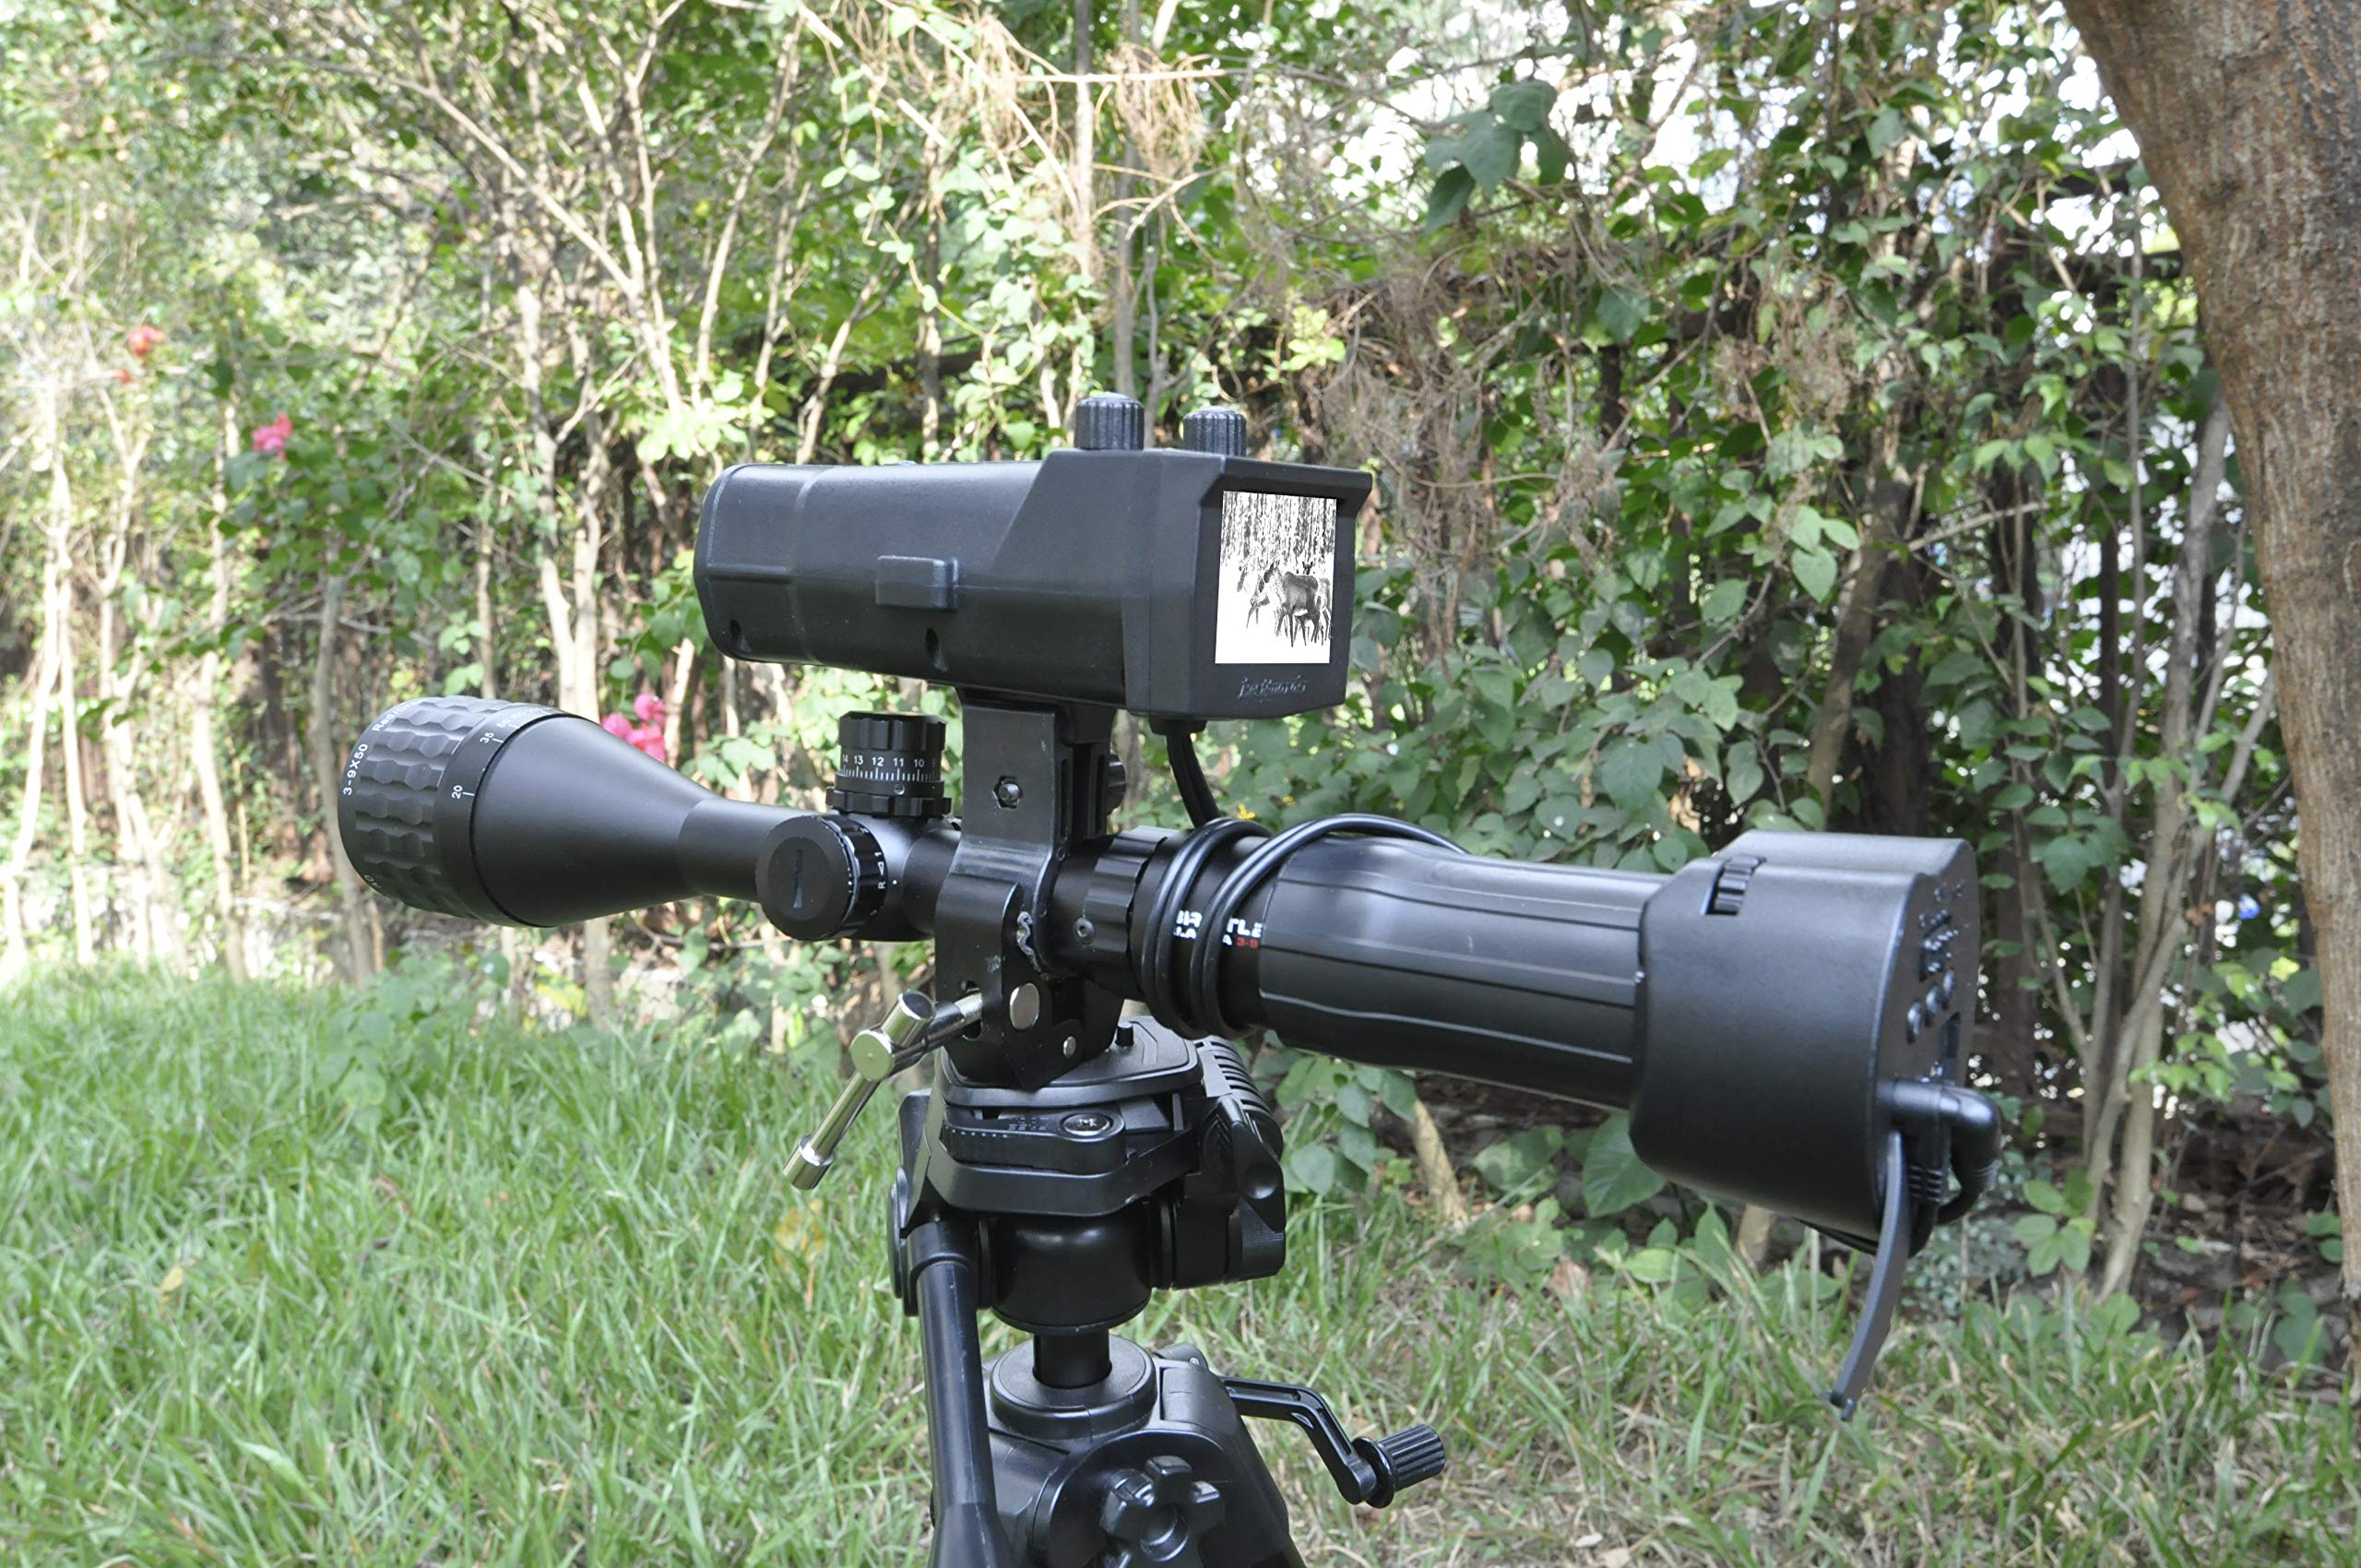 "DOJOYNIGHT 300M / 1000ft / 320 Yards Identification Range Scope Mounted 940NM Infrared Digital Night Vision Systems Recording Photo or Video for Night Hunting with WiFi Function and 4.3"" LCD Screen by DOJOYNIGHT (Image #4)"